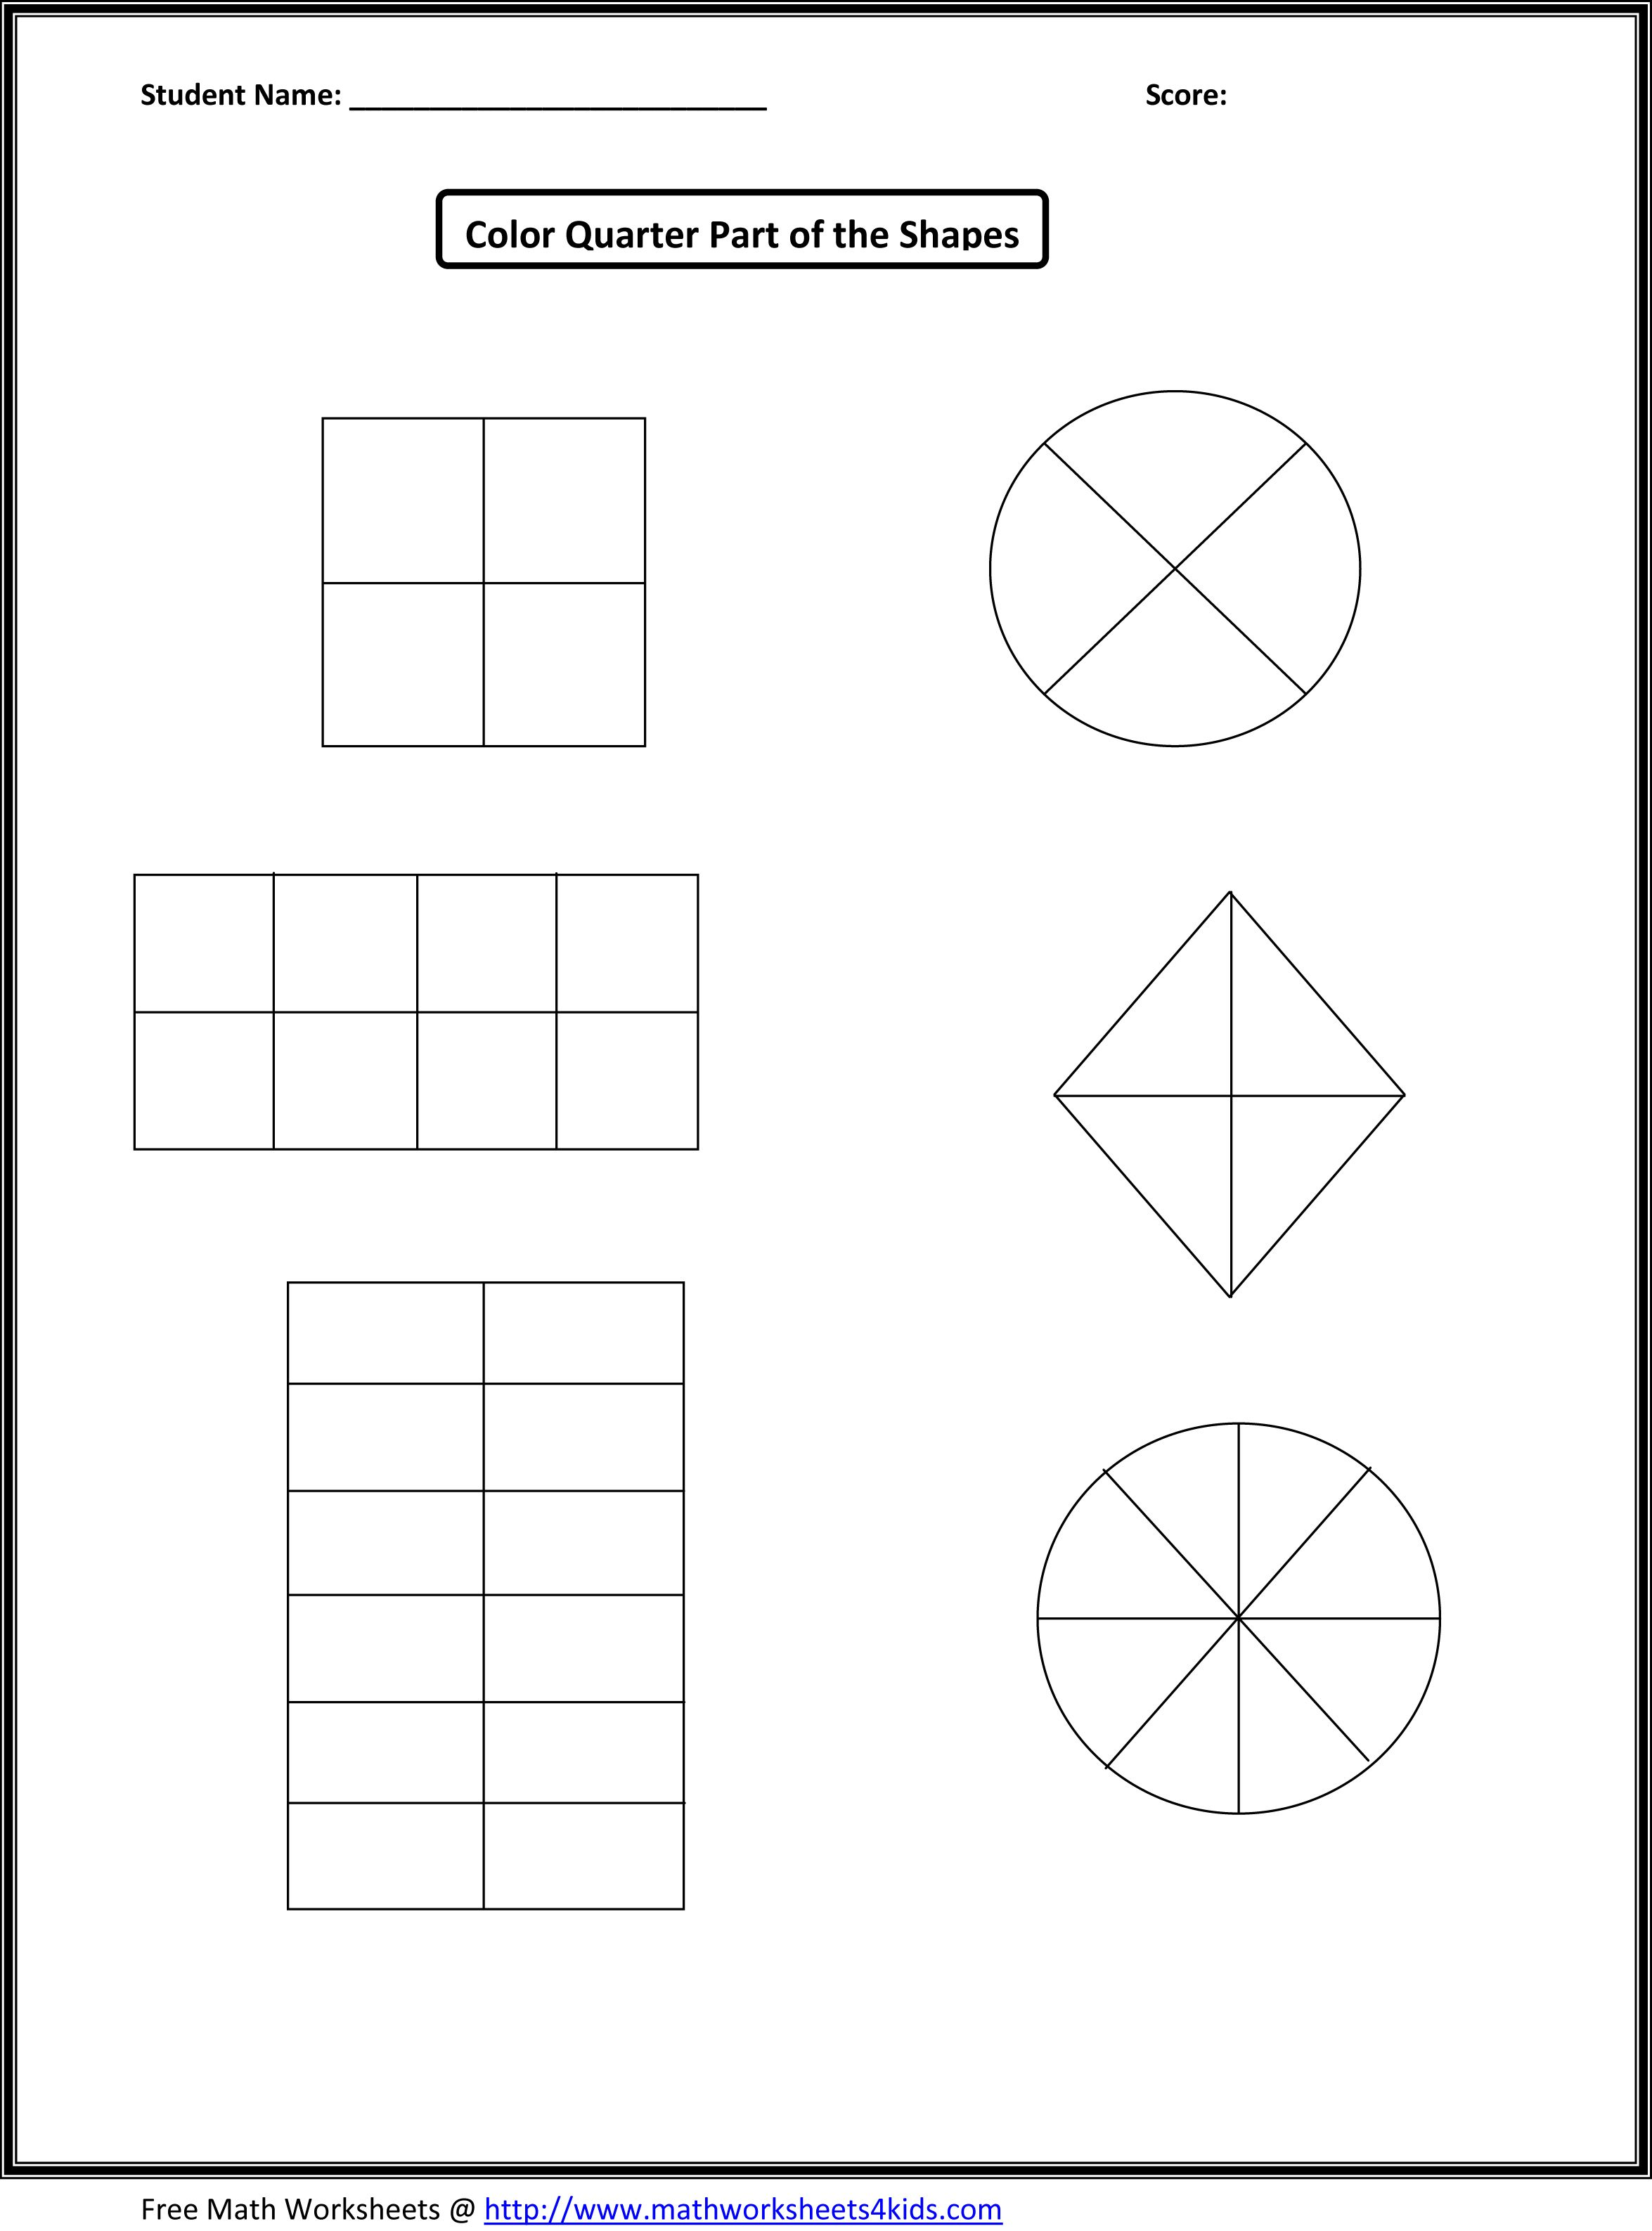 math worksheet : 1000 images about probability and fractions on pinterest  : Fractions Worksheets For Class 4